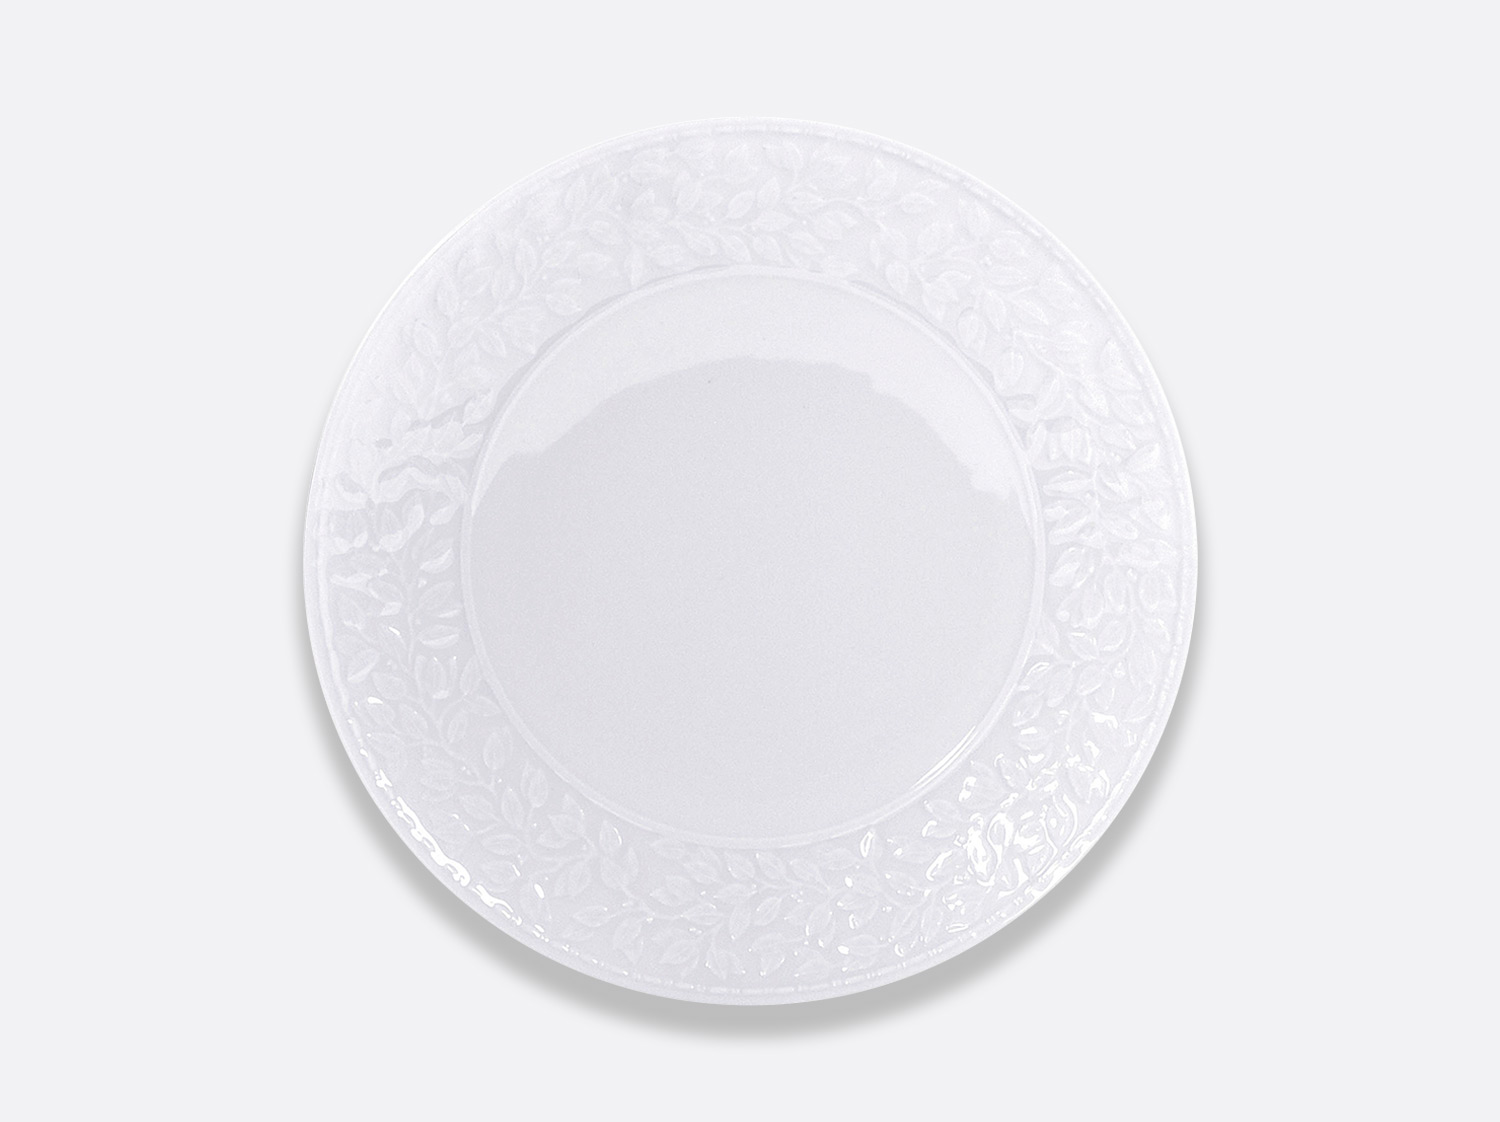 China Coupe dinner plate 26 cm of the collection Louvre | Bernardaud